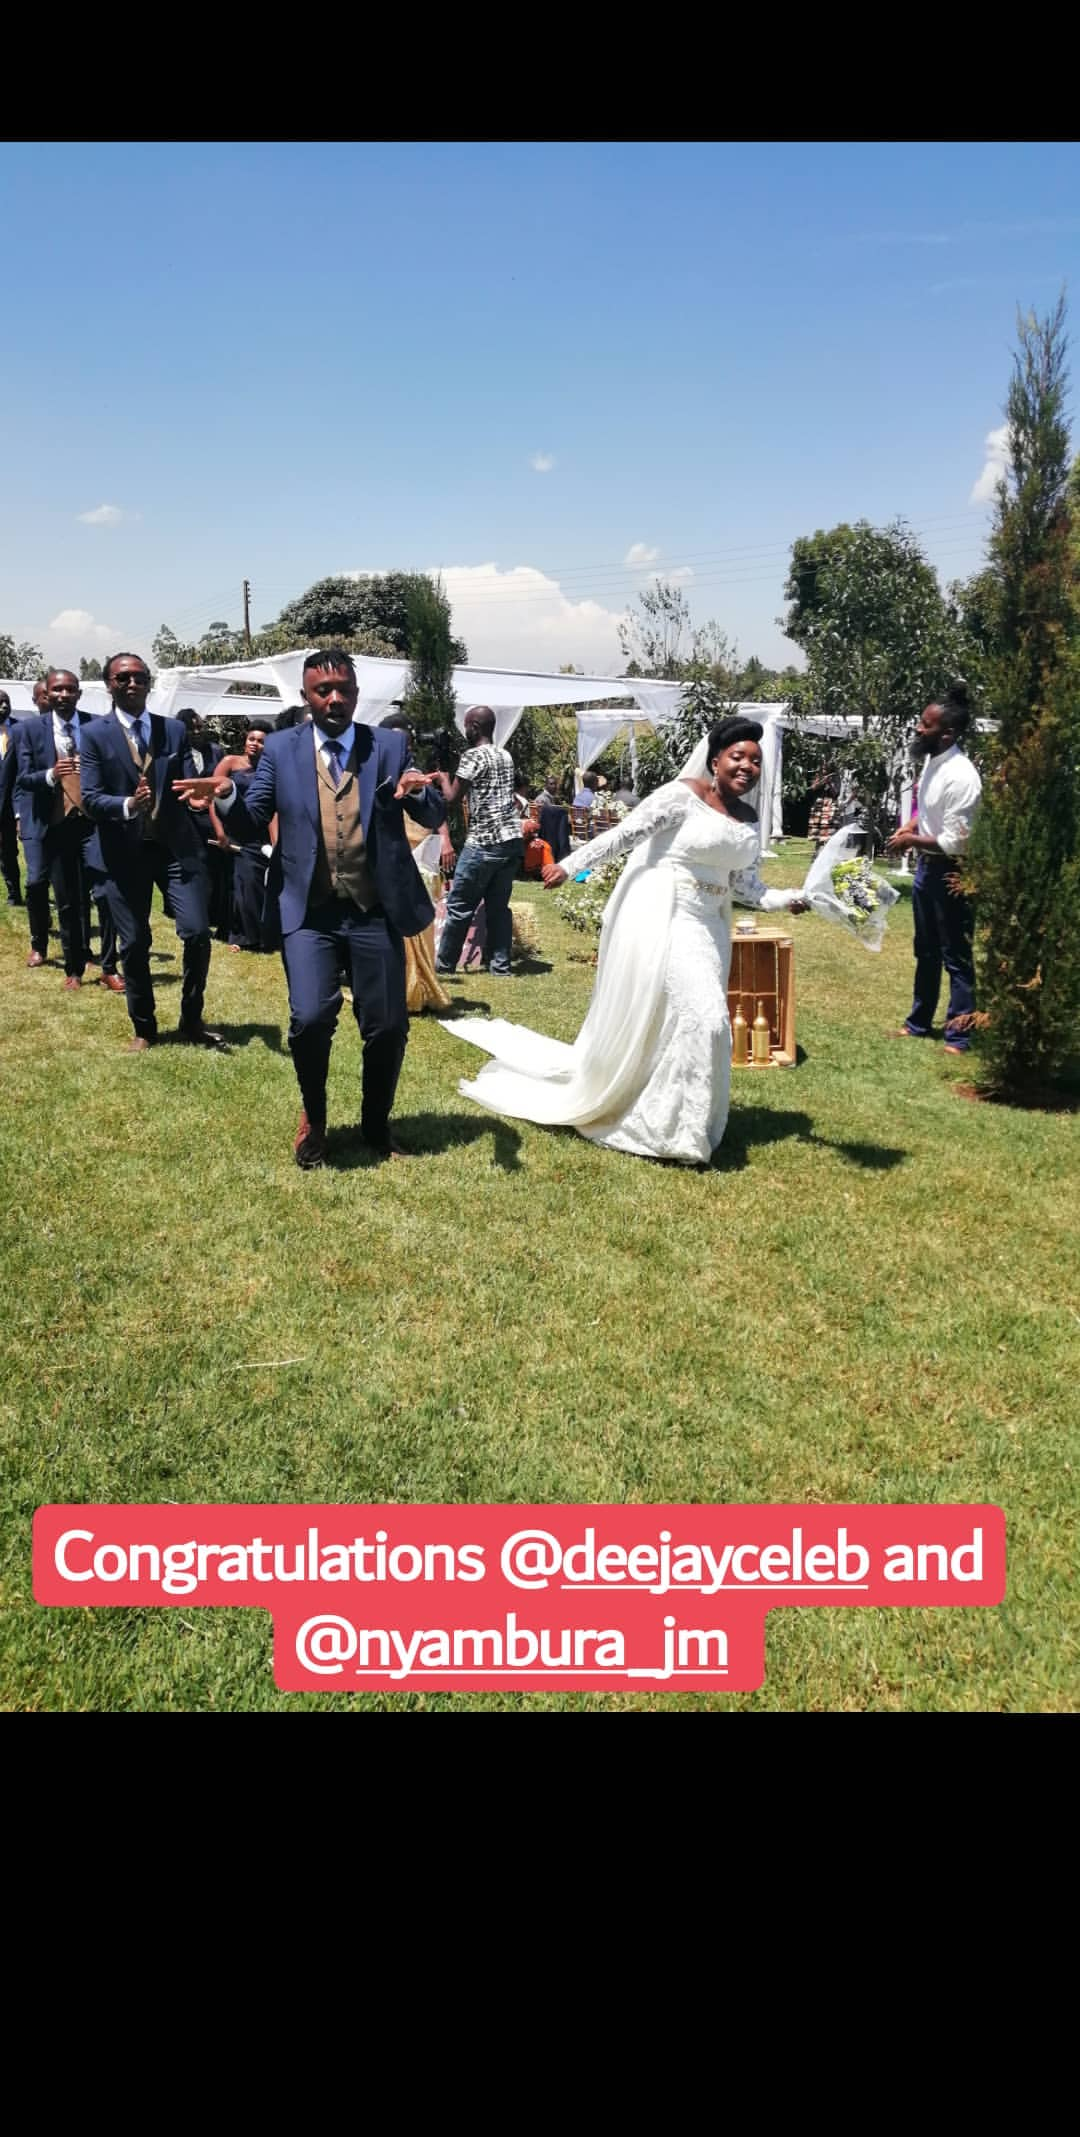 52810193 2315316522080592 1901013494126351236 n - Finally! K24's Deejay Celeb walks down the aisle (Photos)